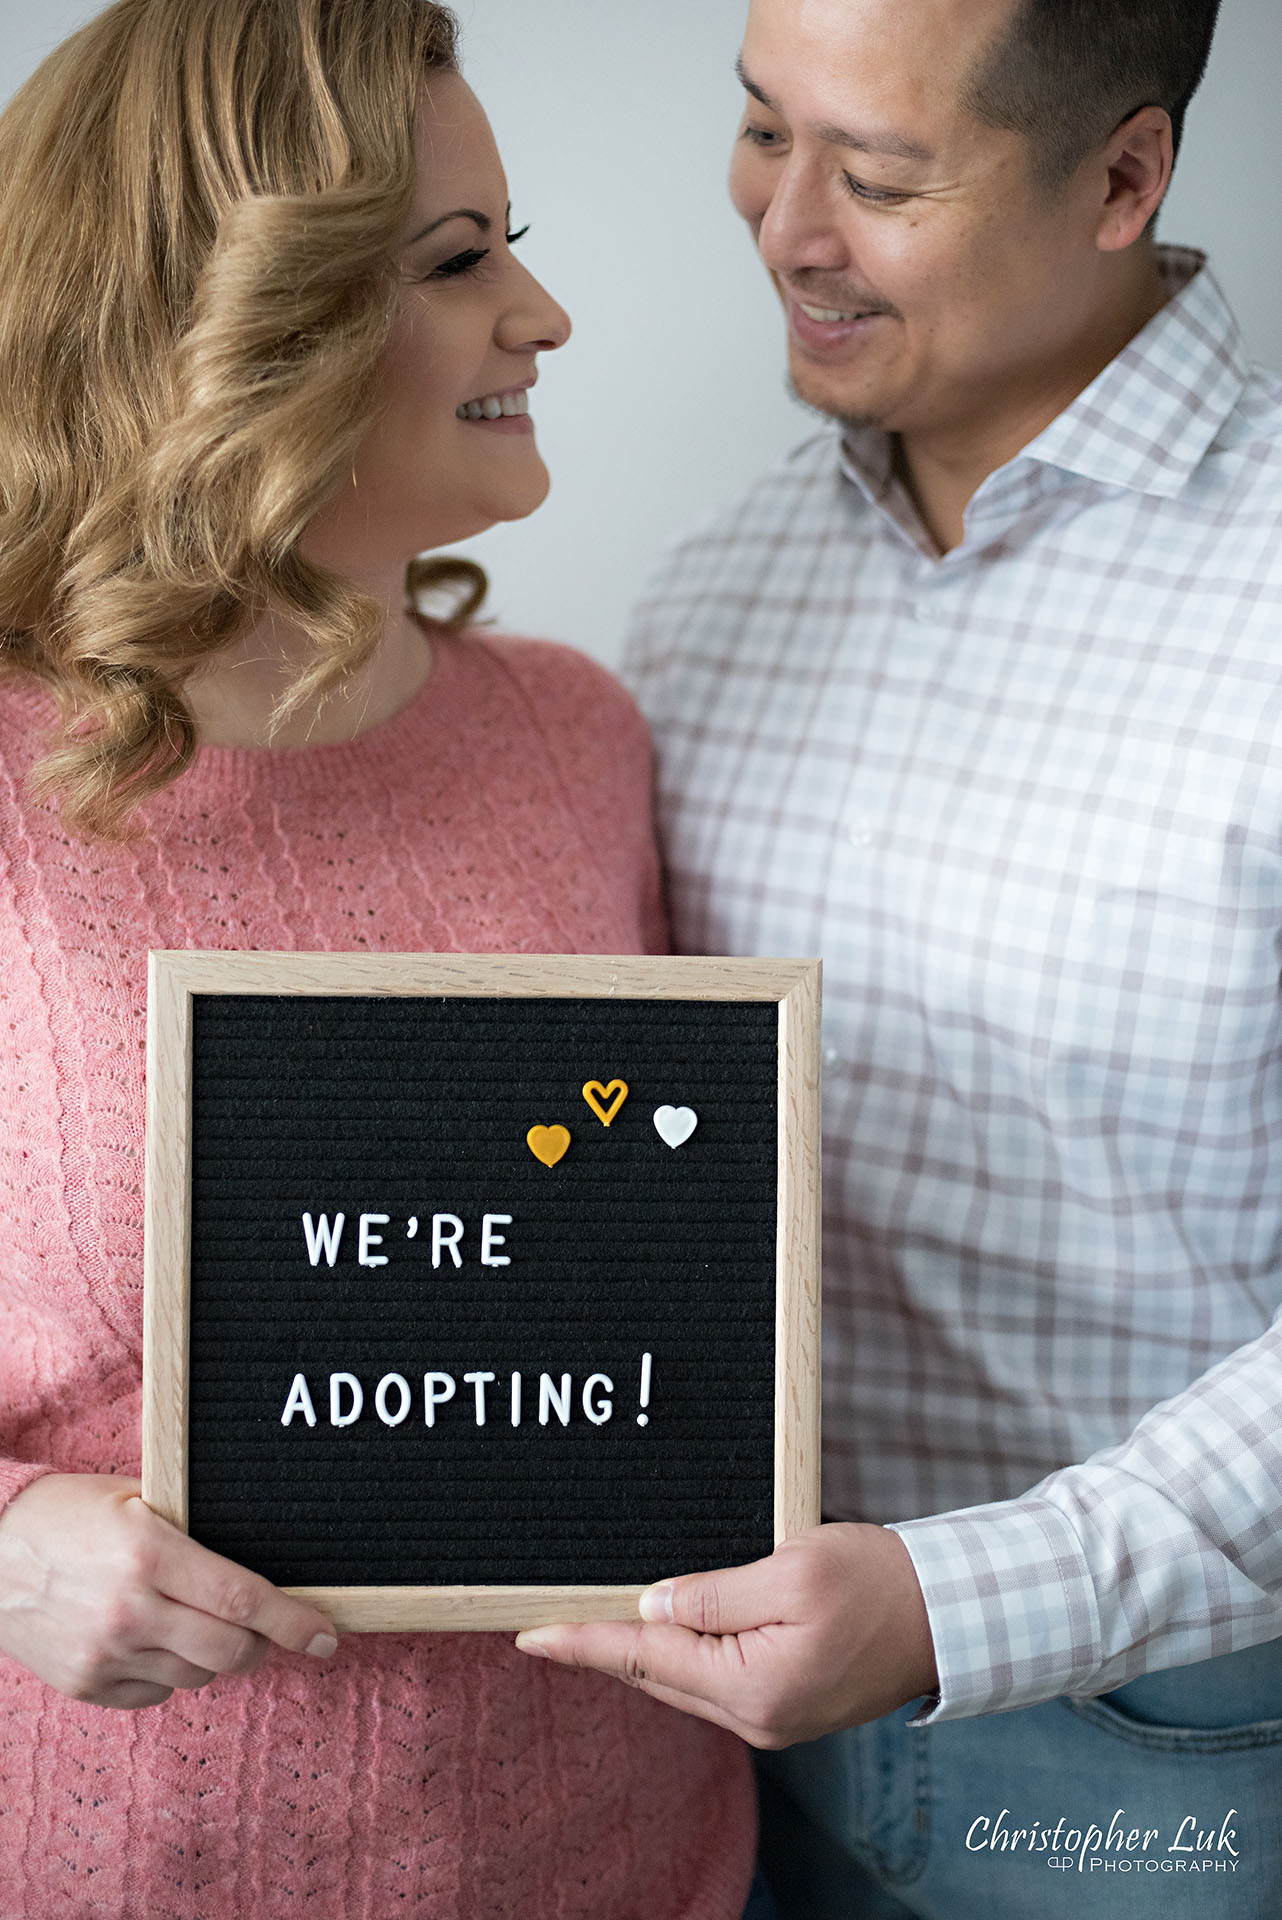 Christopher Luk Toronto Markham Family Adoption LifeBook Photographer Pictures Photos Children Session Parents We're Adopting Letter Board Sign Smile Vertical Portrait